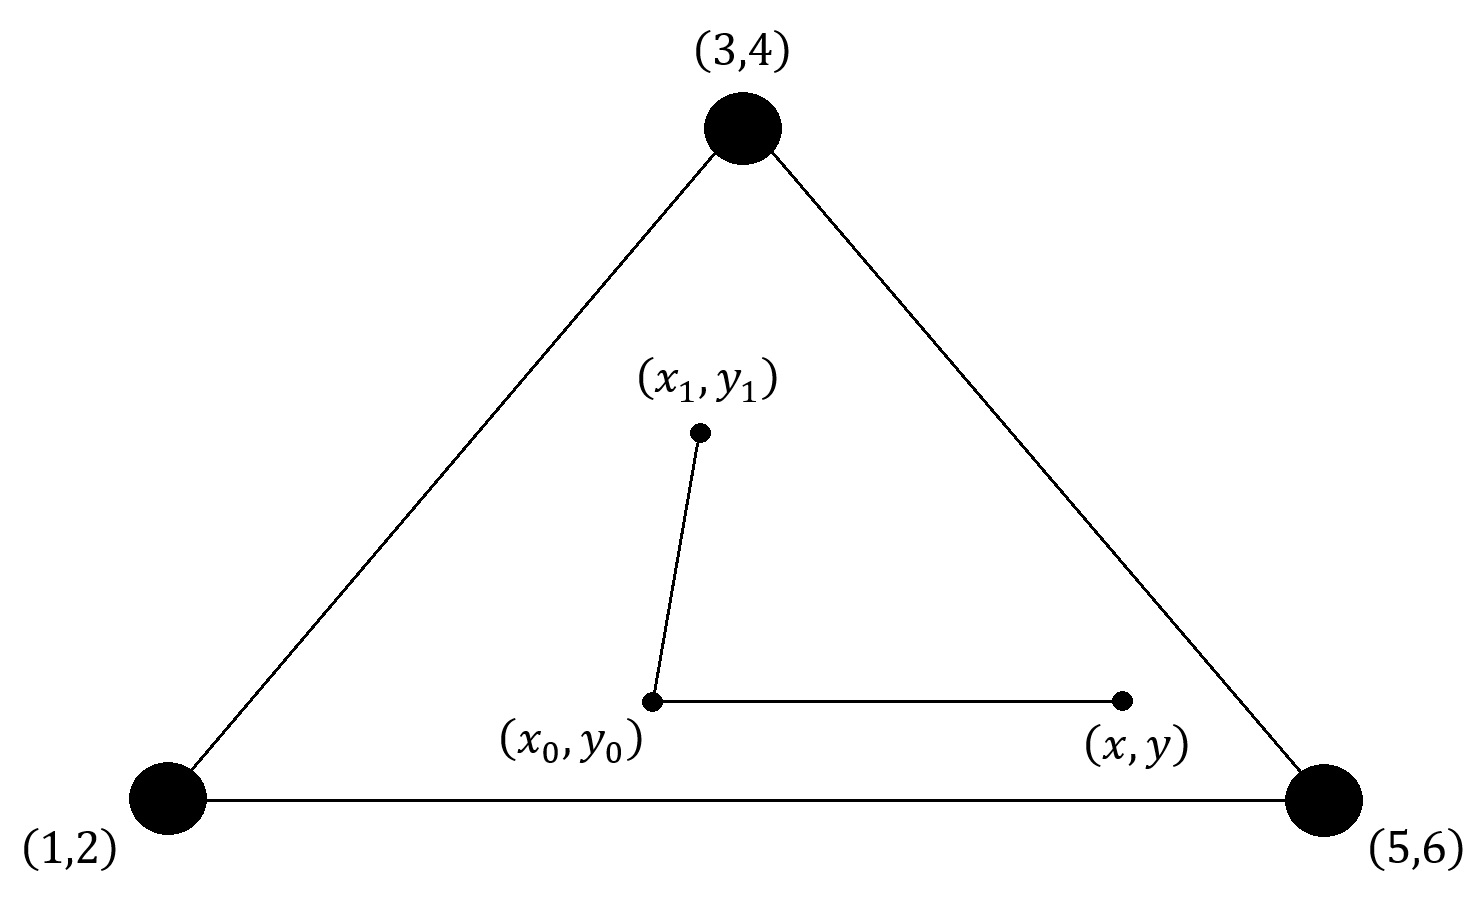 Figure 2: The three points \((1,2)\), \((3,4)\), and \((5,6)\) form an equilateral triangle. Choose any arbitrary point \((x,y)\) anywhere on the plane either inside or outside the triangle. If you rolled a 1 or 2, then draw a new point \((x_0,y_0)\) whose distance is half way between the points \((x,y)\) and \((1,2)\). Repeat this many times.